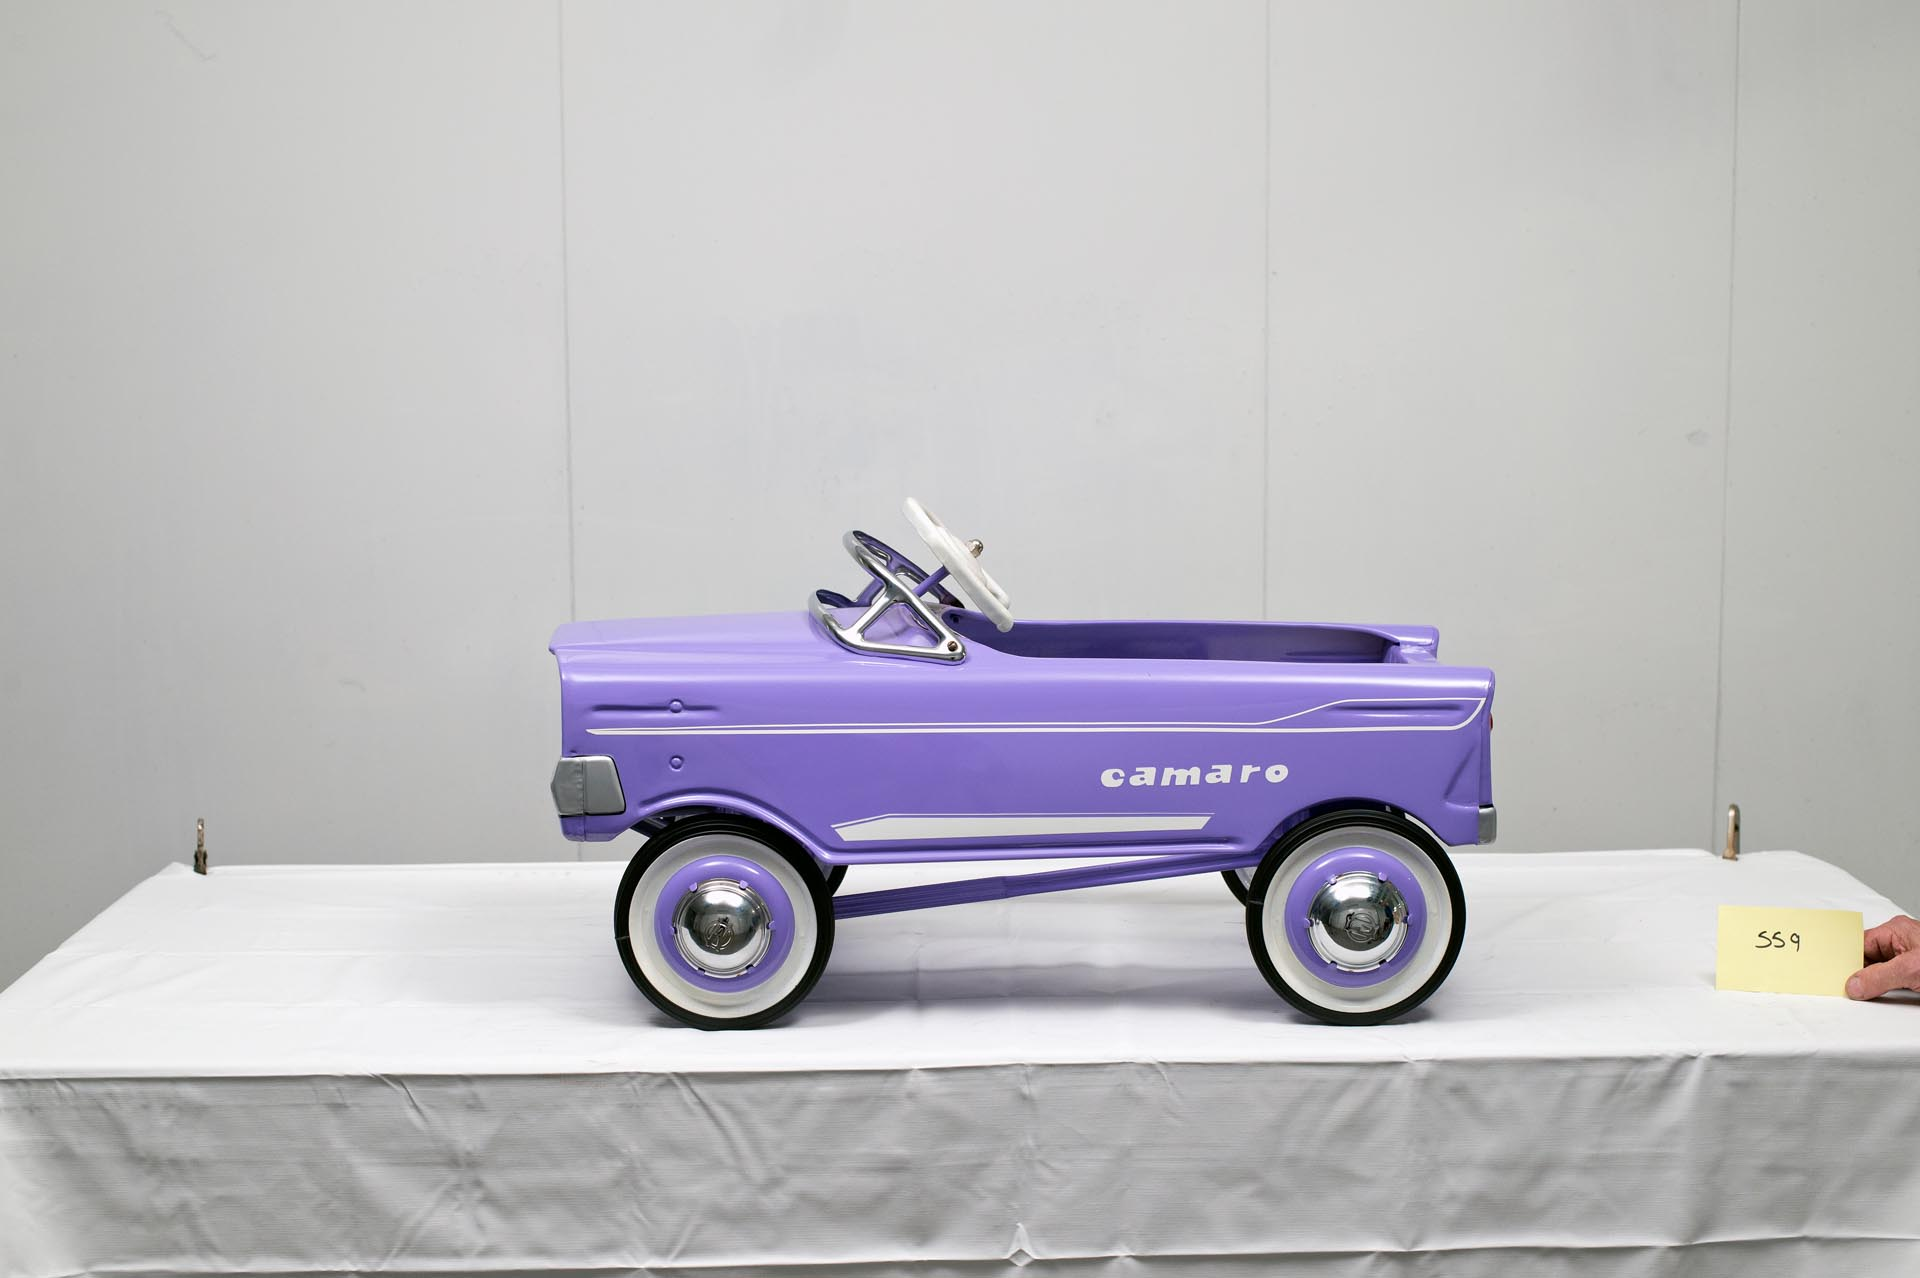 1968 Murray Camaro Pedal Car